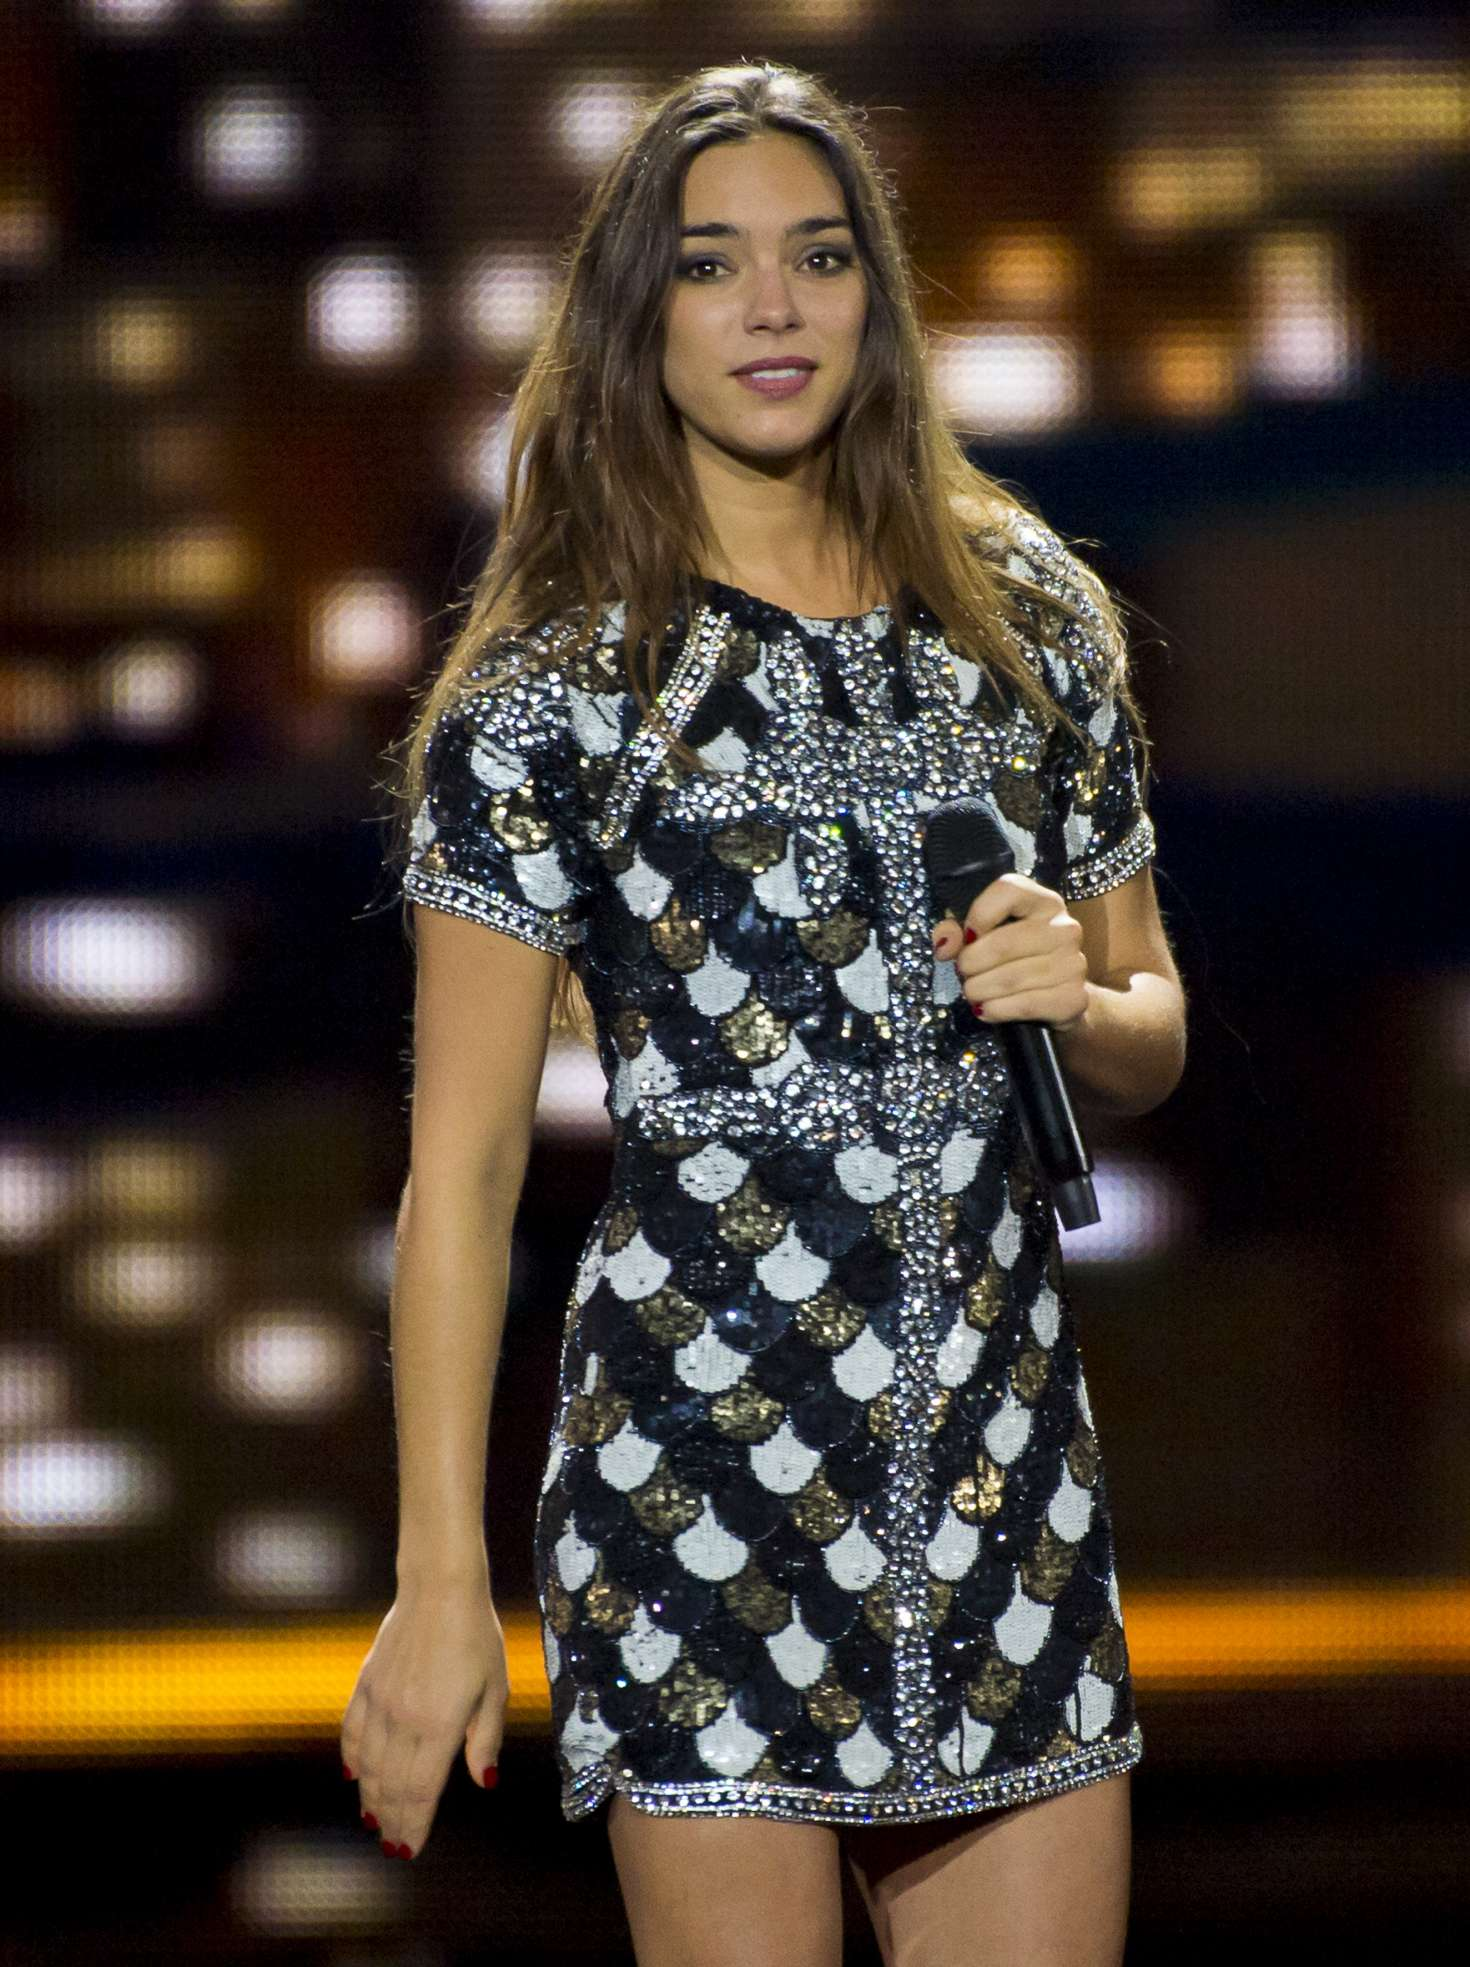 Alexandra Maquet - France Rehearsing at the Eurovision song contest 2017 in Kiev